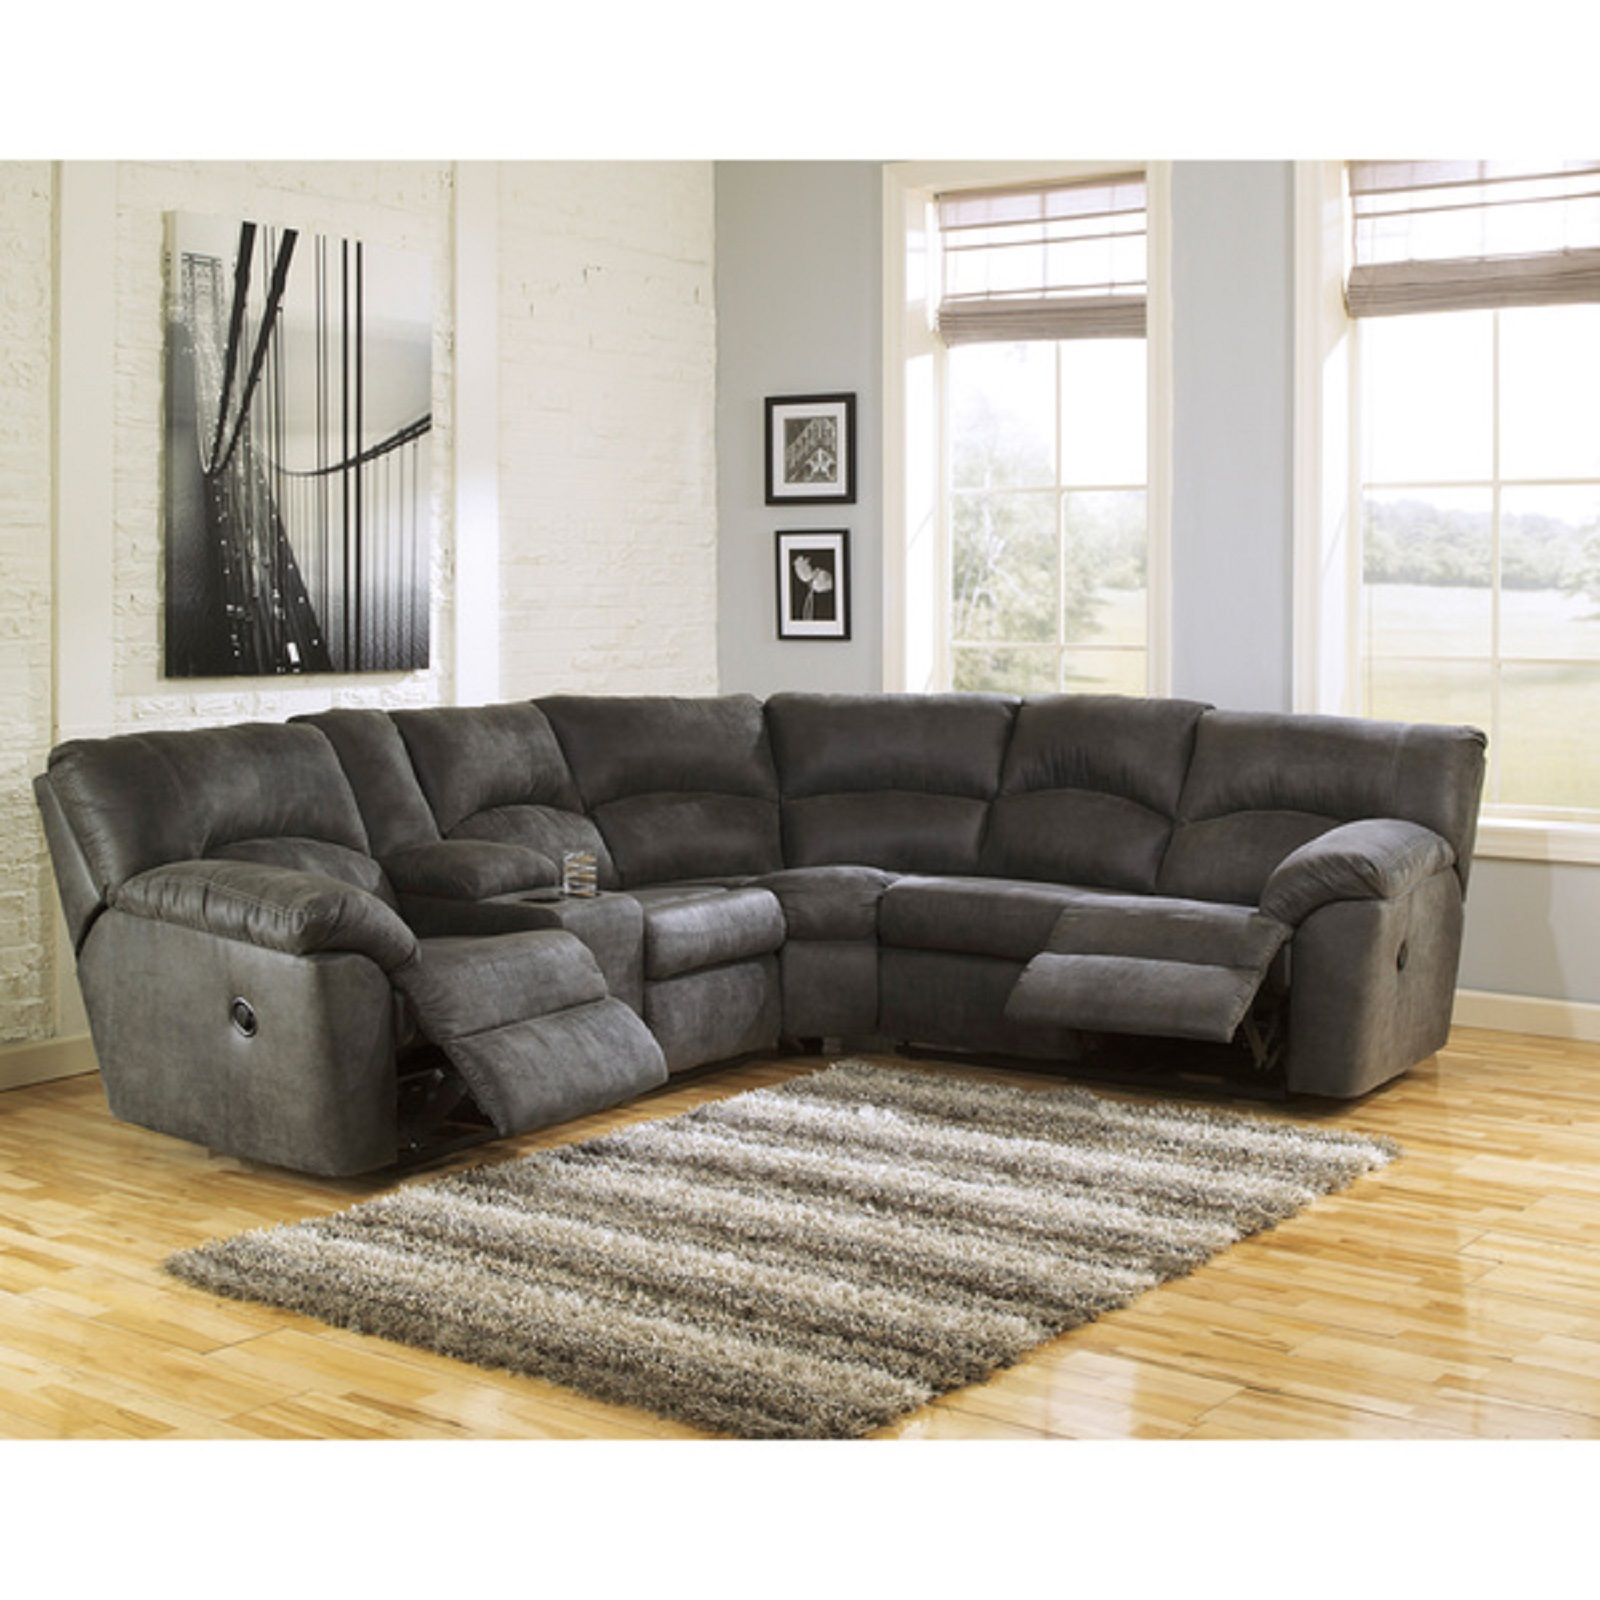 Ashley Furniture Tambo Pewter Sectional